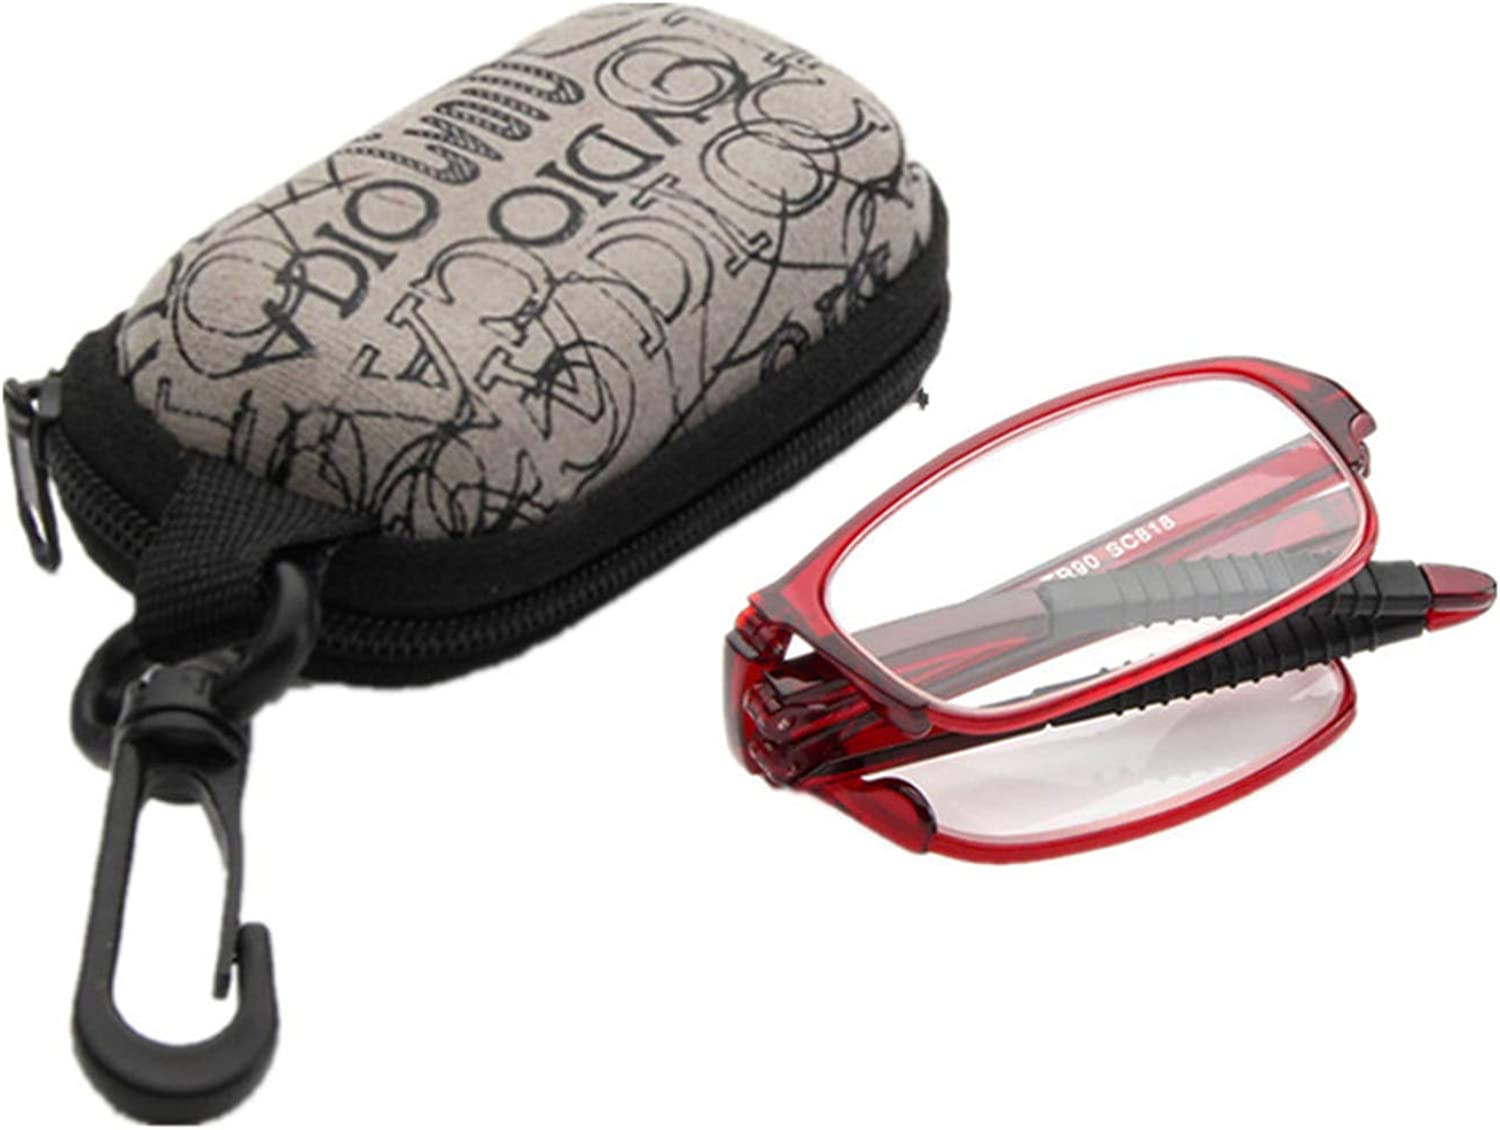 Folding Bendable Reading Glasses Mens Womens Travel Office Glasses Includes Case with Lens Strength Variations Up to 4.0x